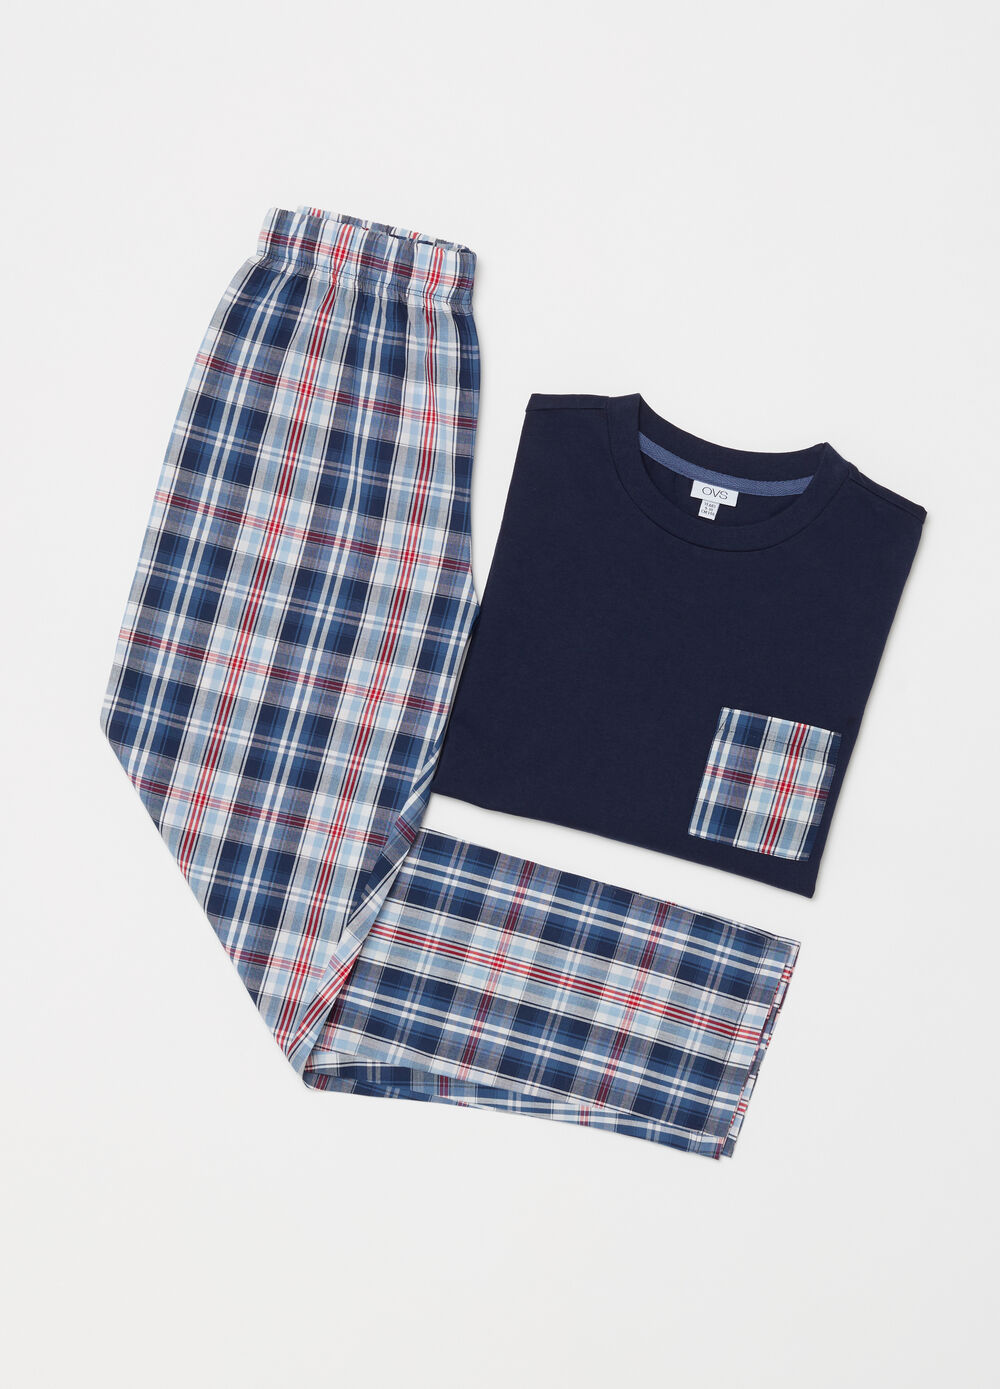 Lightweight cotton pyjamas with pocket and check pattern